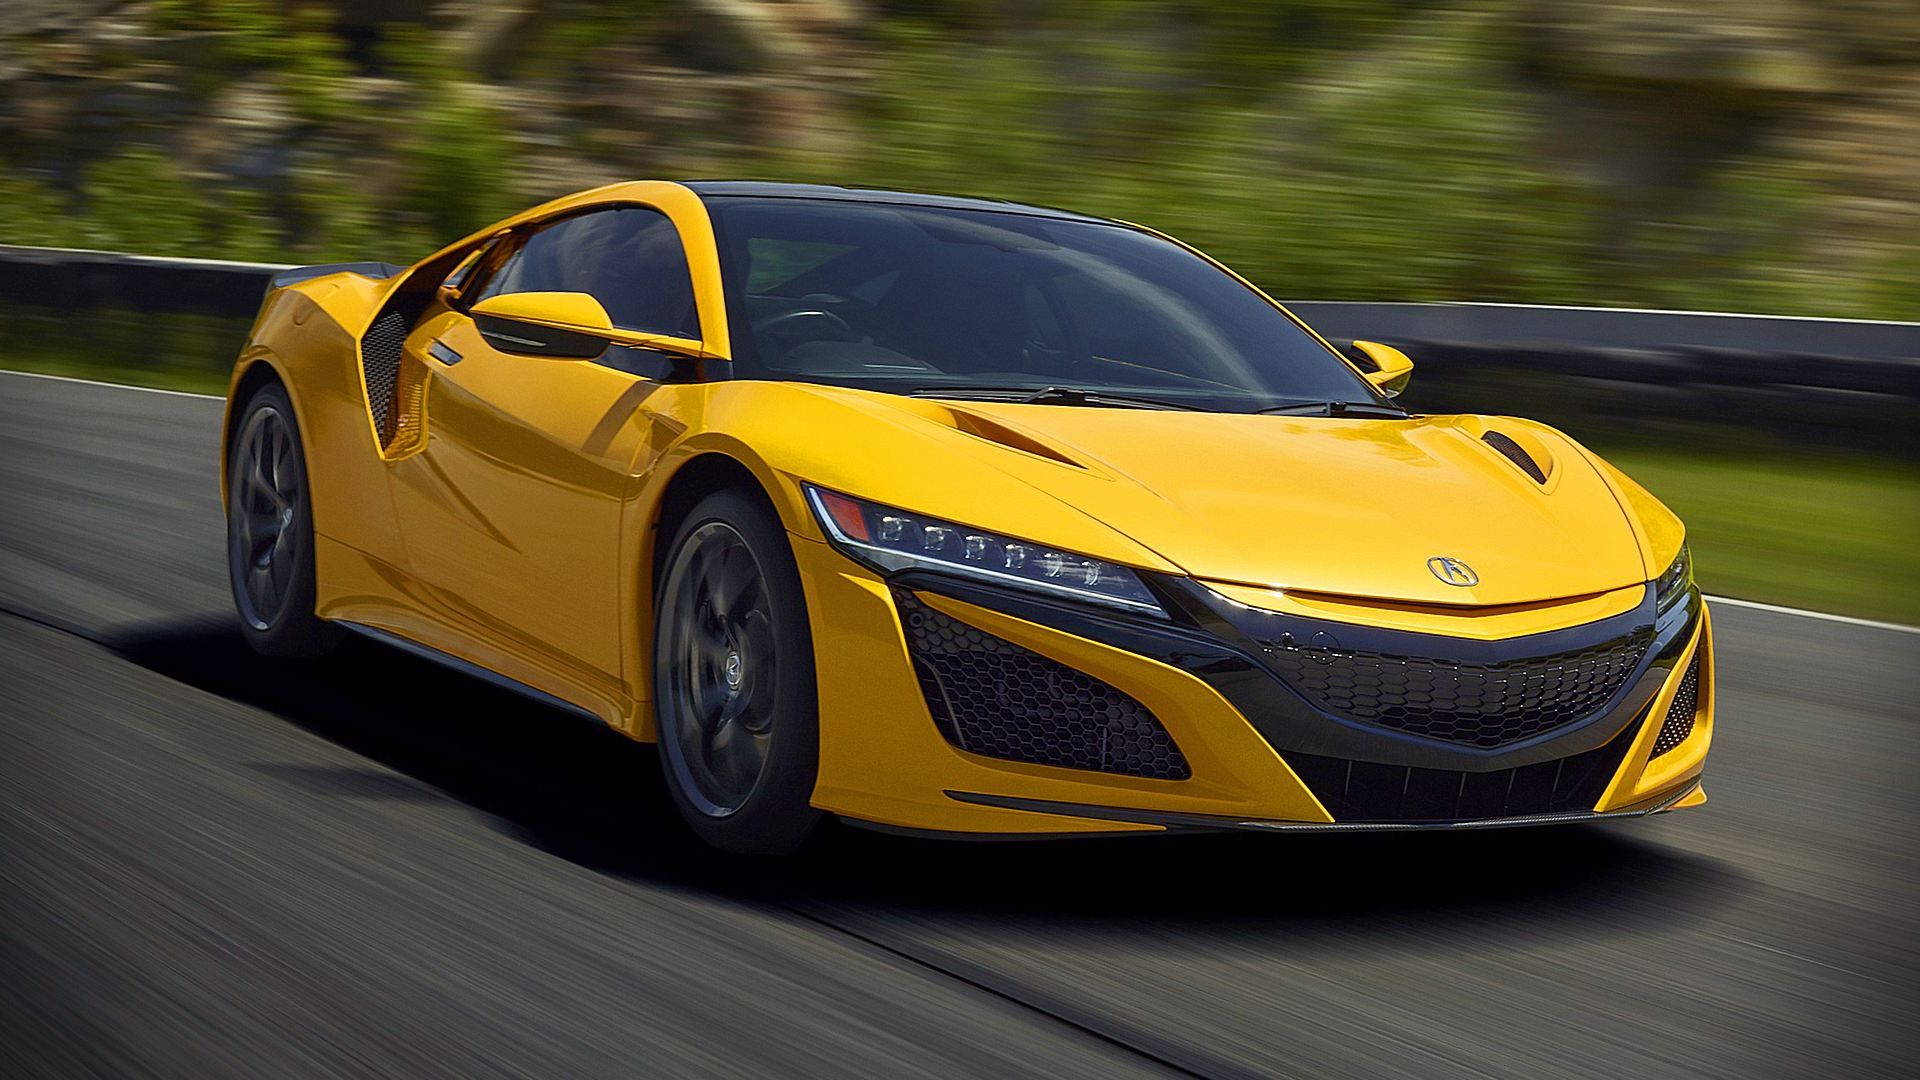 2020 Acura Nsx Pictures In 2020 Nsx Acura Nsx Acura Cars